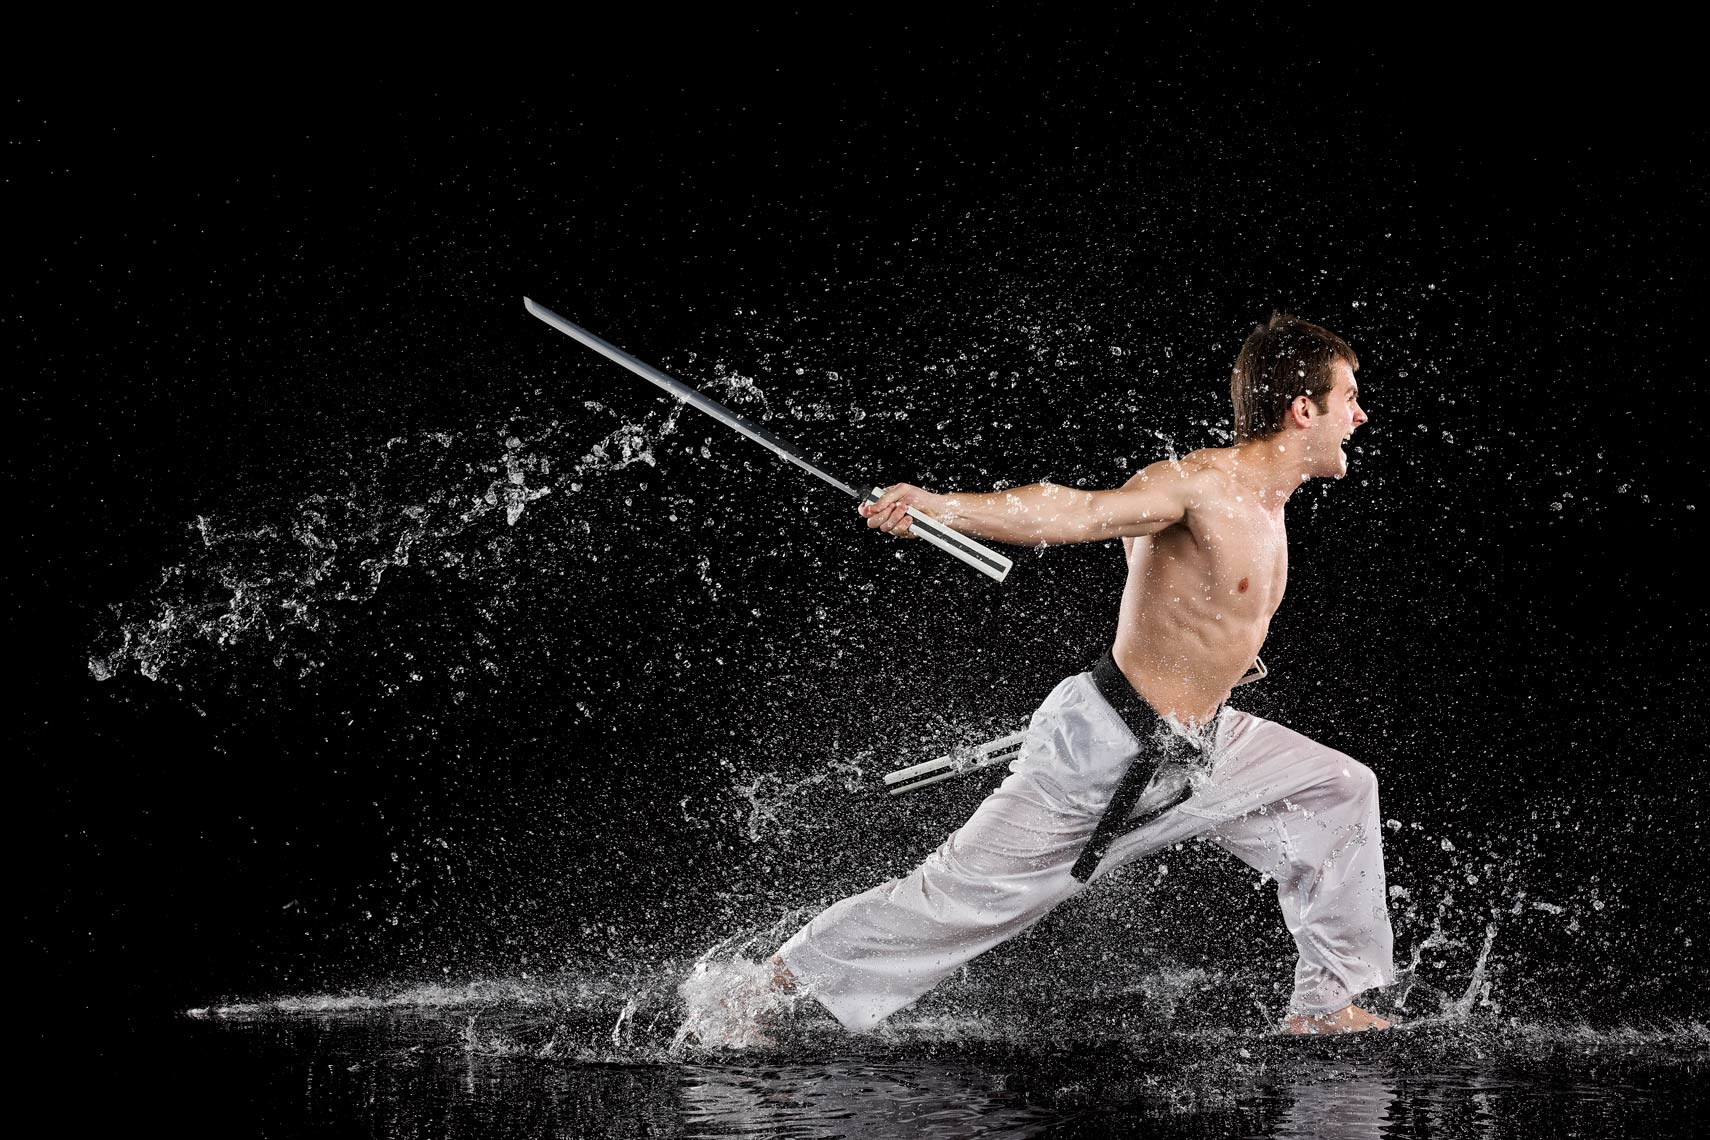 Martial-Art-Splash-7-0719-Edited.jpg